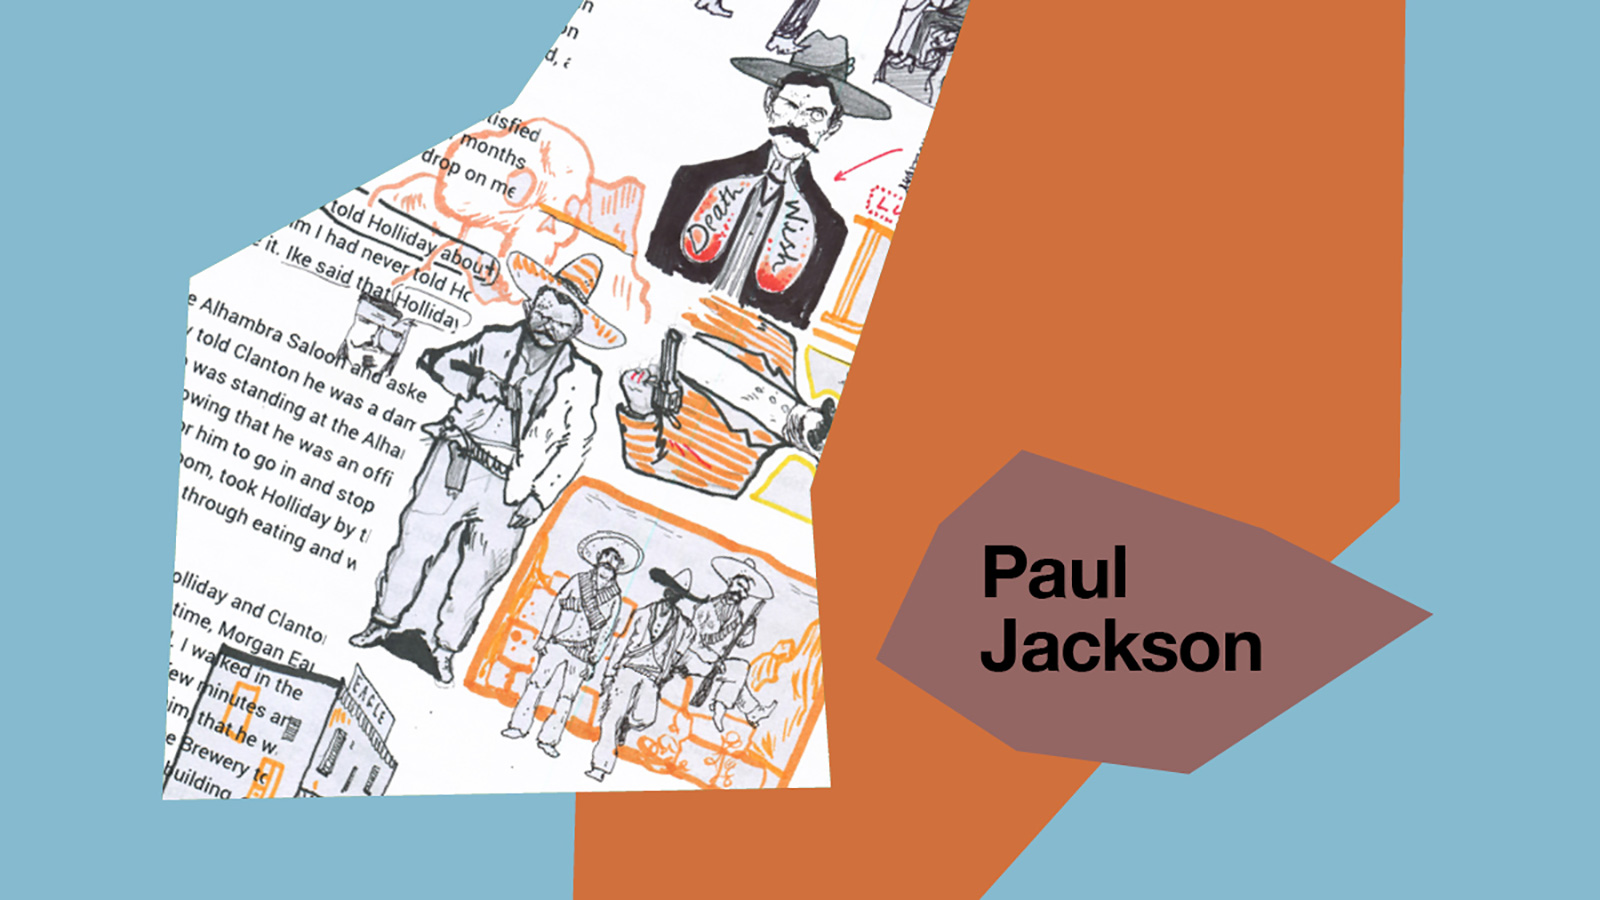 A collage featuring Paul's illustration work.